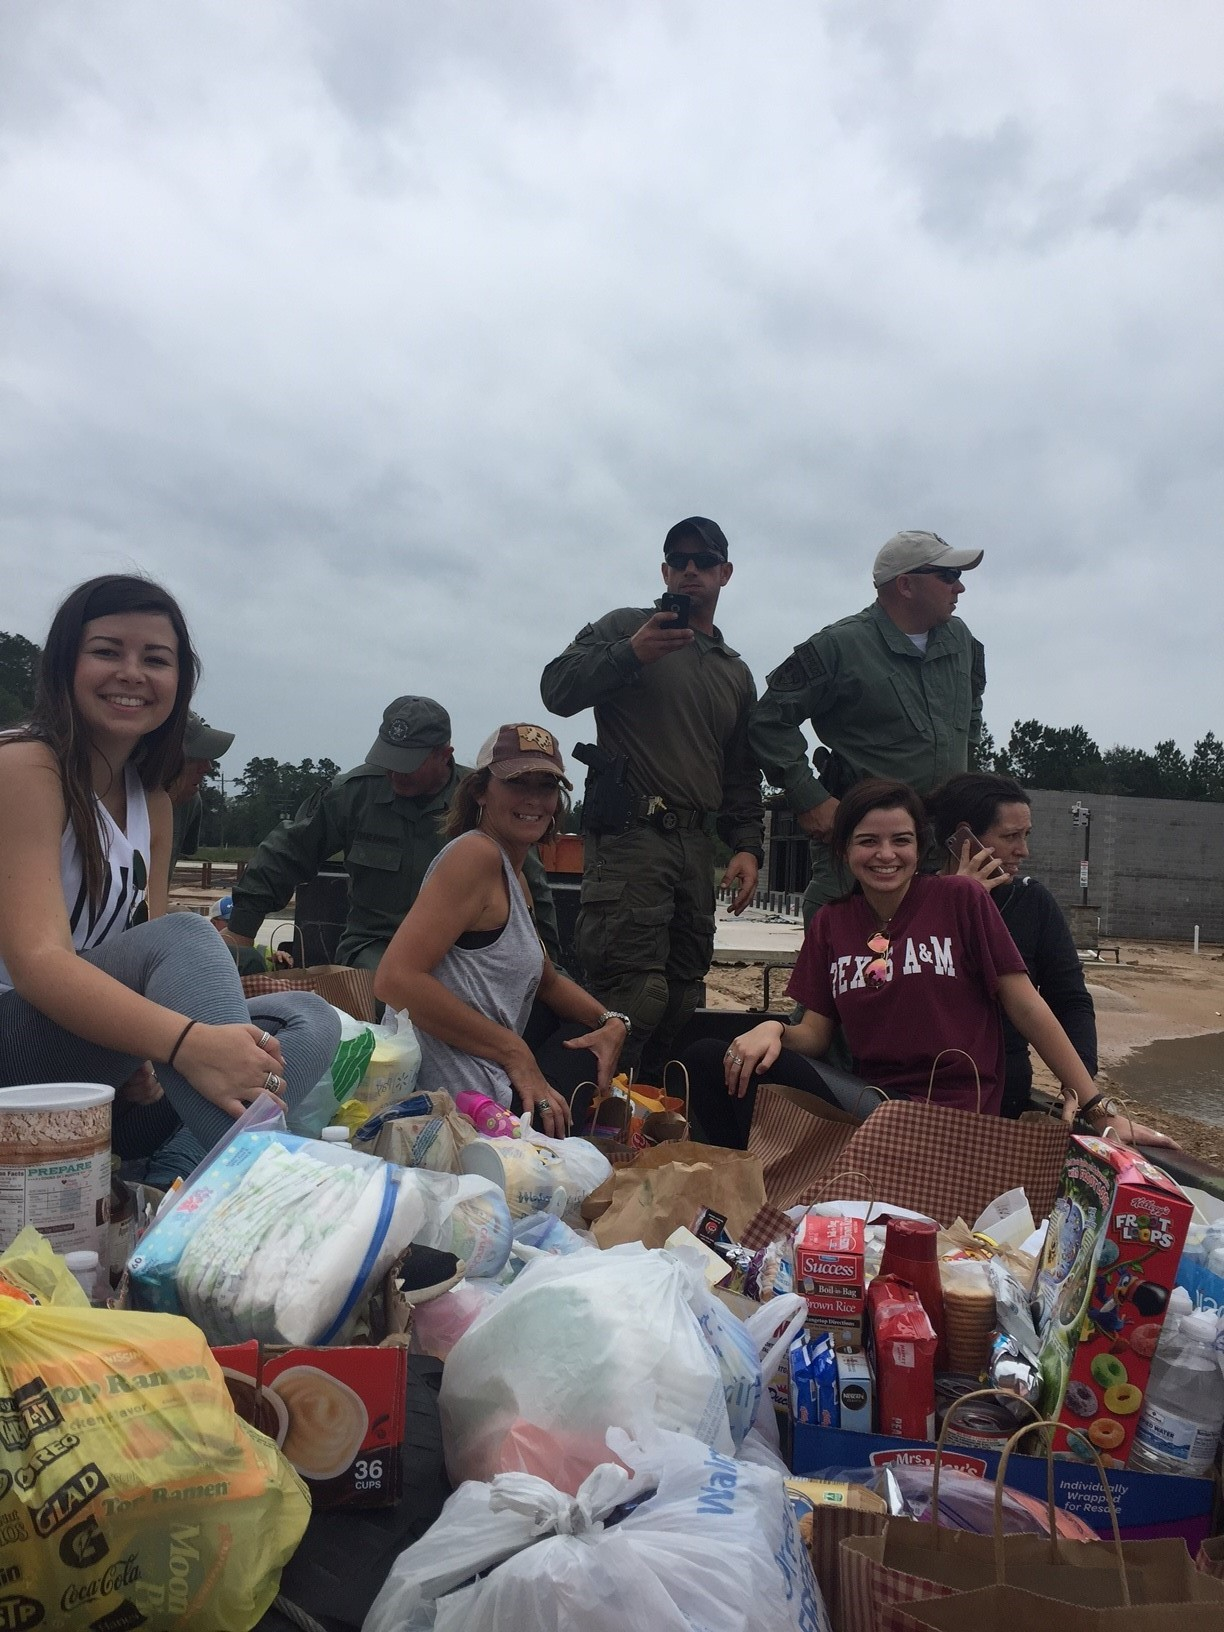 Volunteers and the Texas Rangers are transported along with food and supplies into areas land locked by flooding waters.